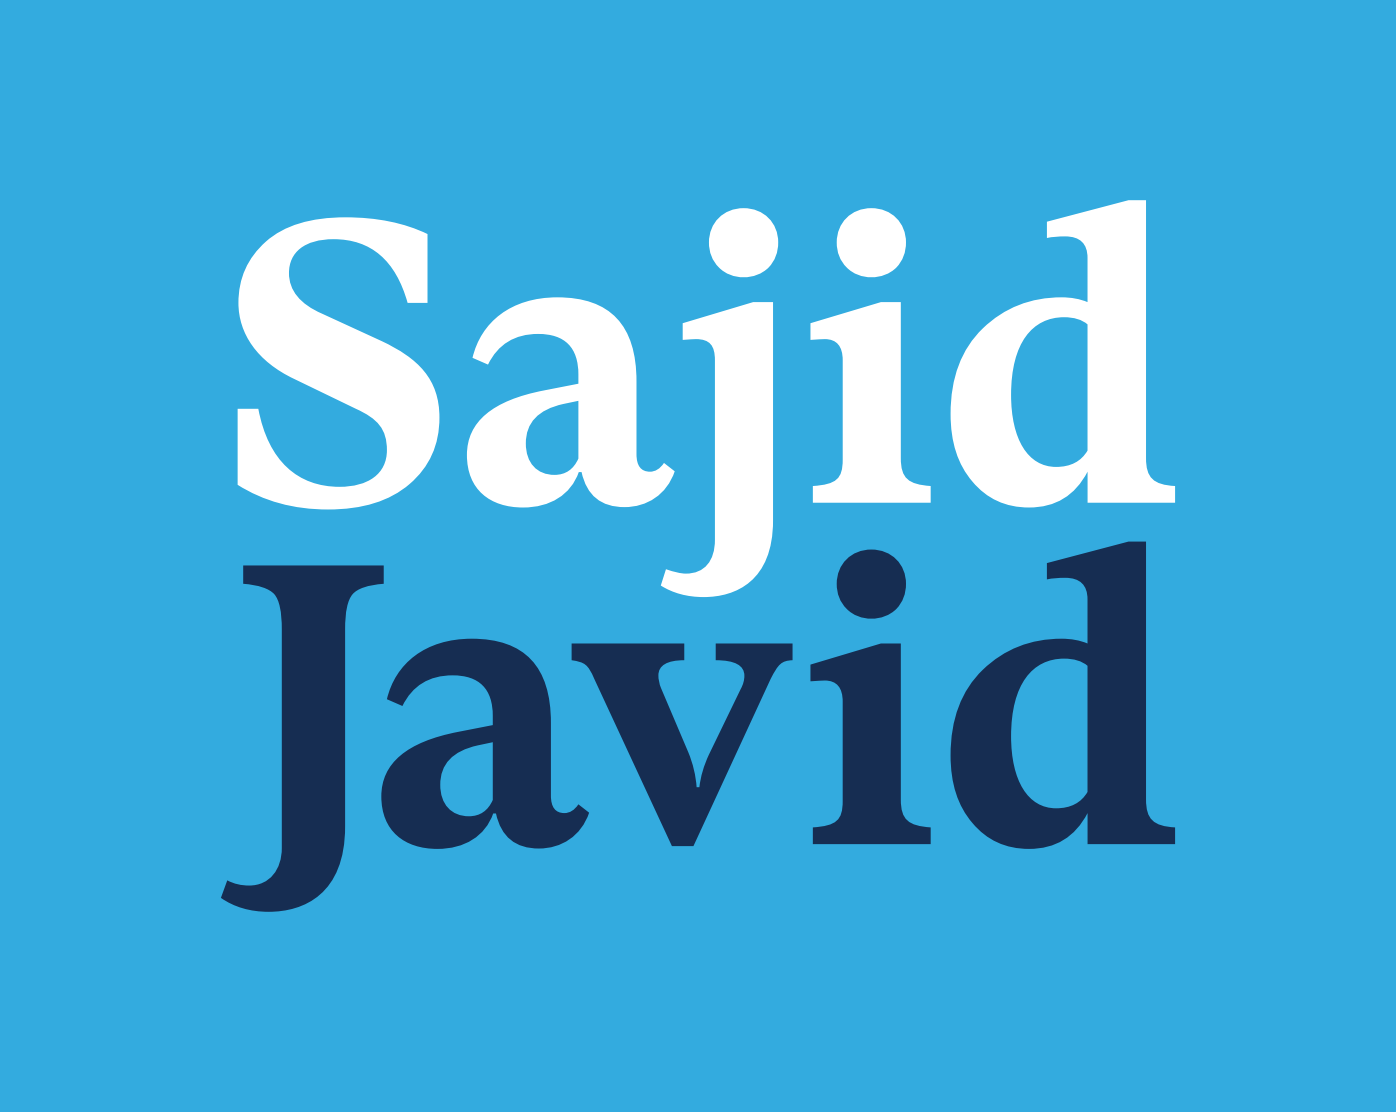 Sajid Javid for Leader of the Conservative & Unionist Party